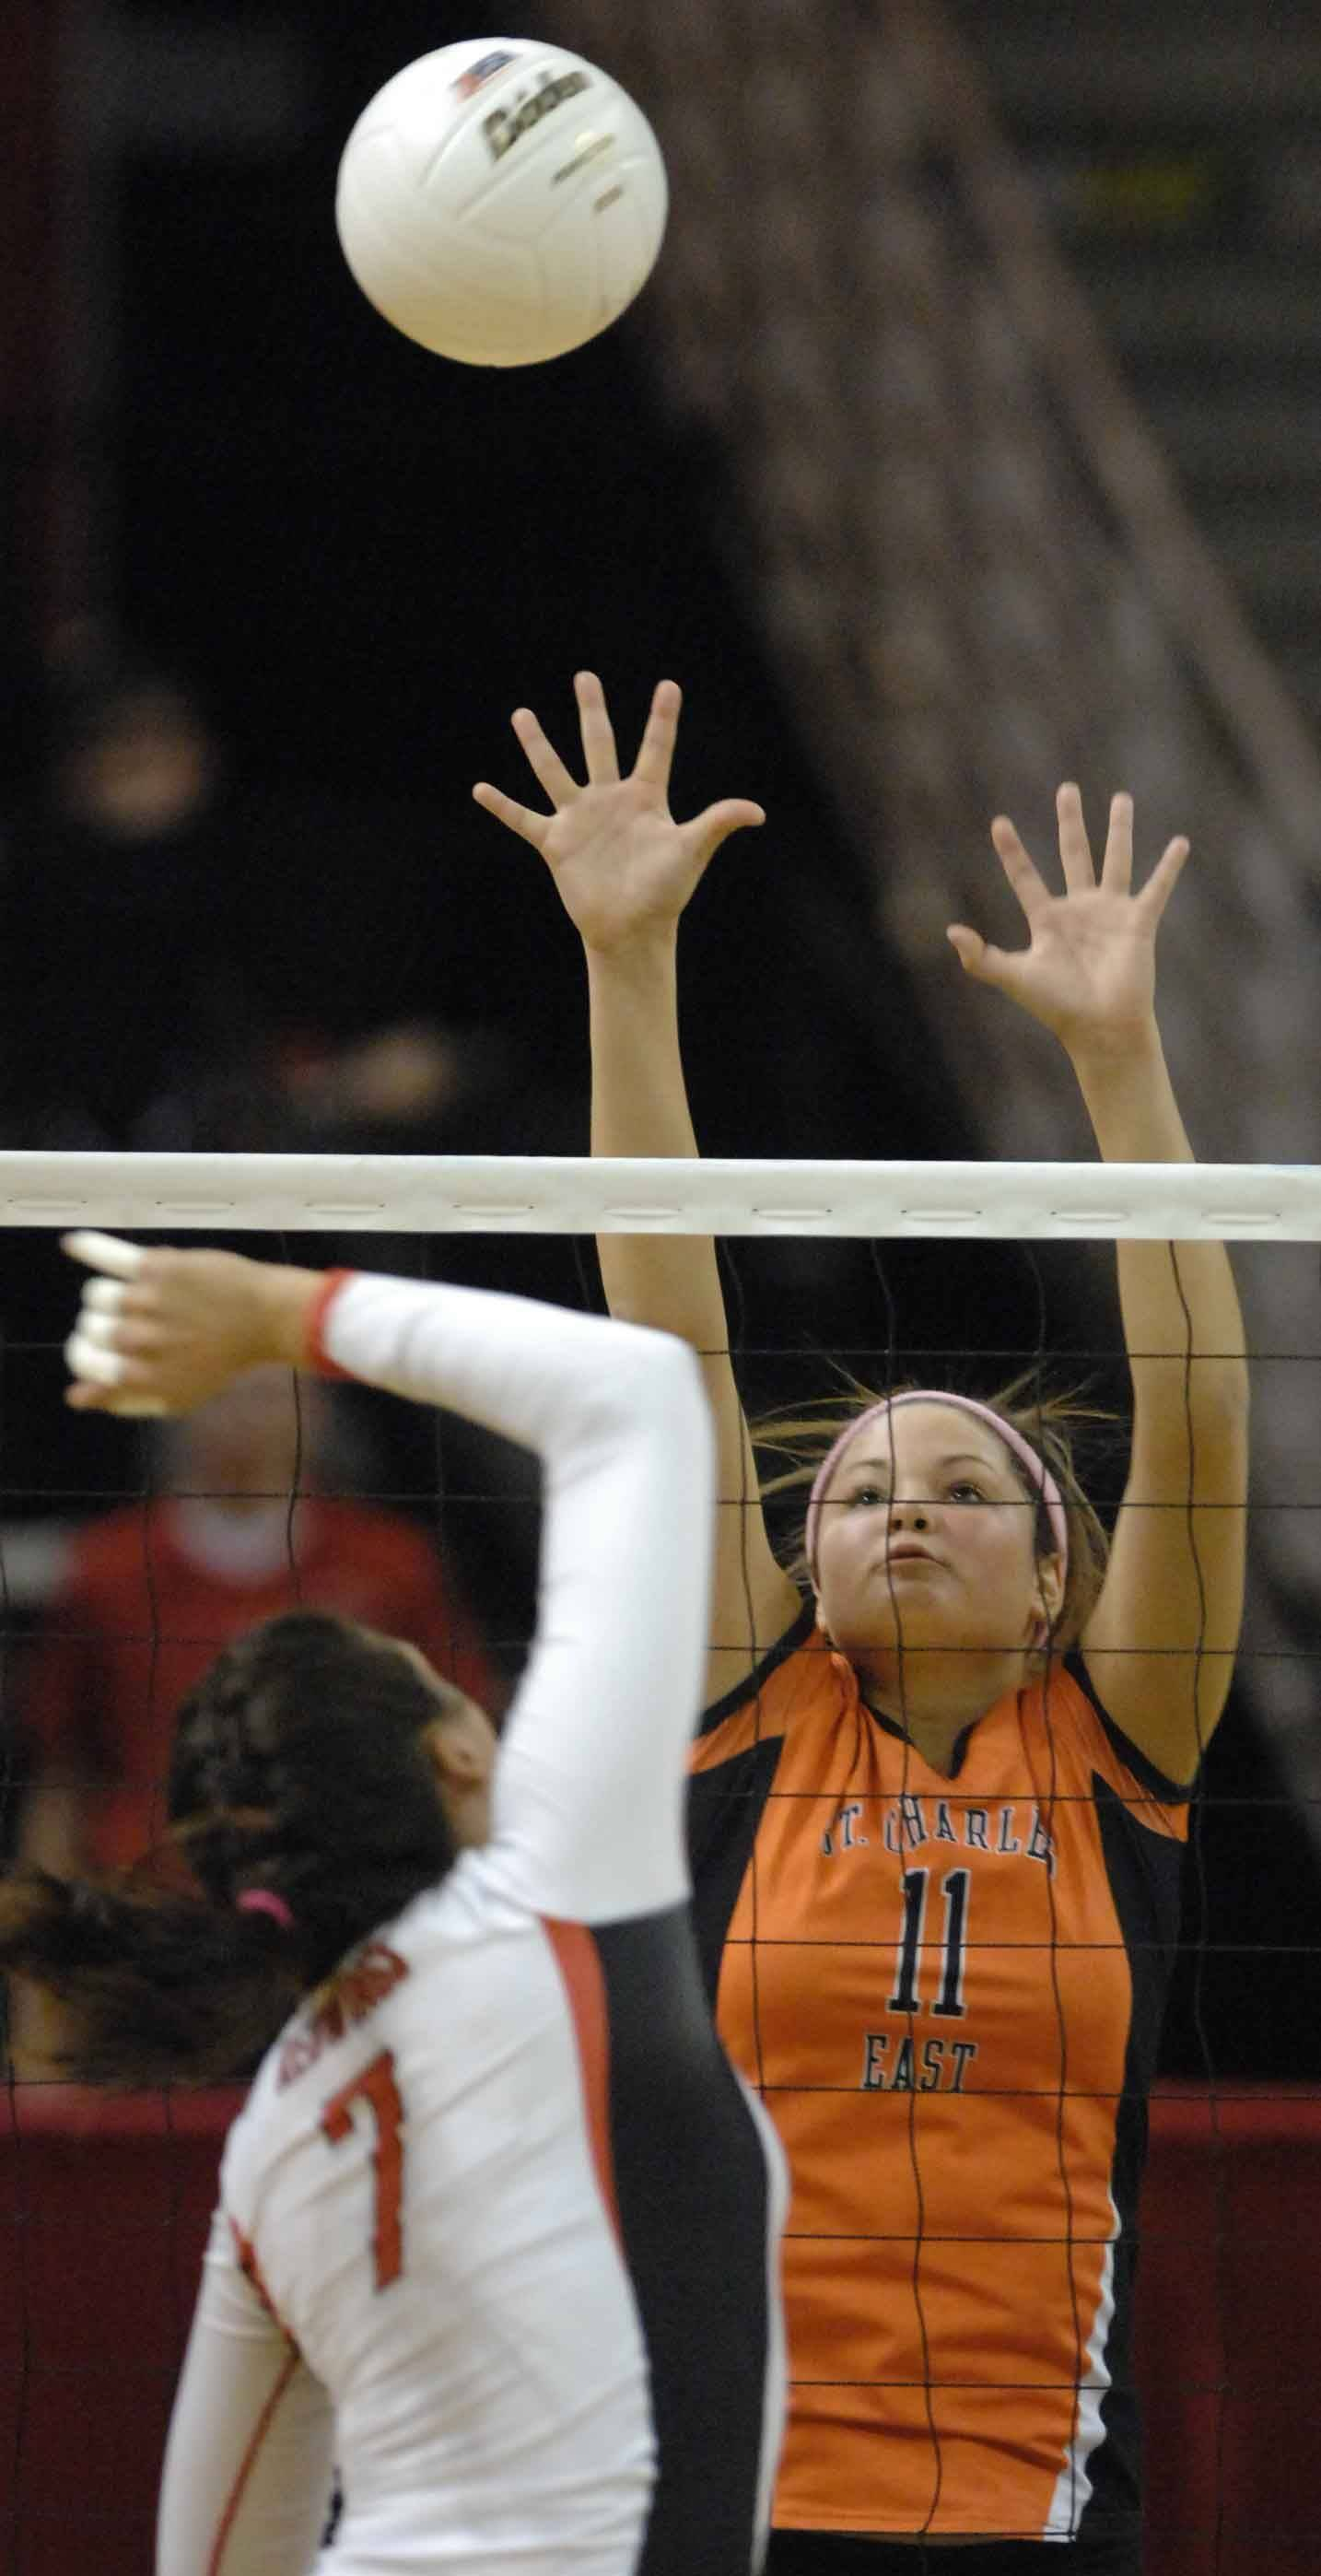 Jenna Jendryk of Benet hits one at Erienne Barry of St. Charles during the Benet vs. St. Charles East girls volleyball 4A semifinal Friday in Normal.